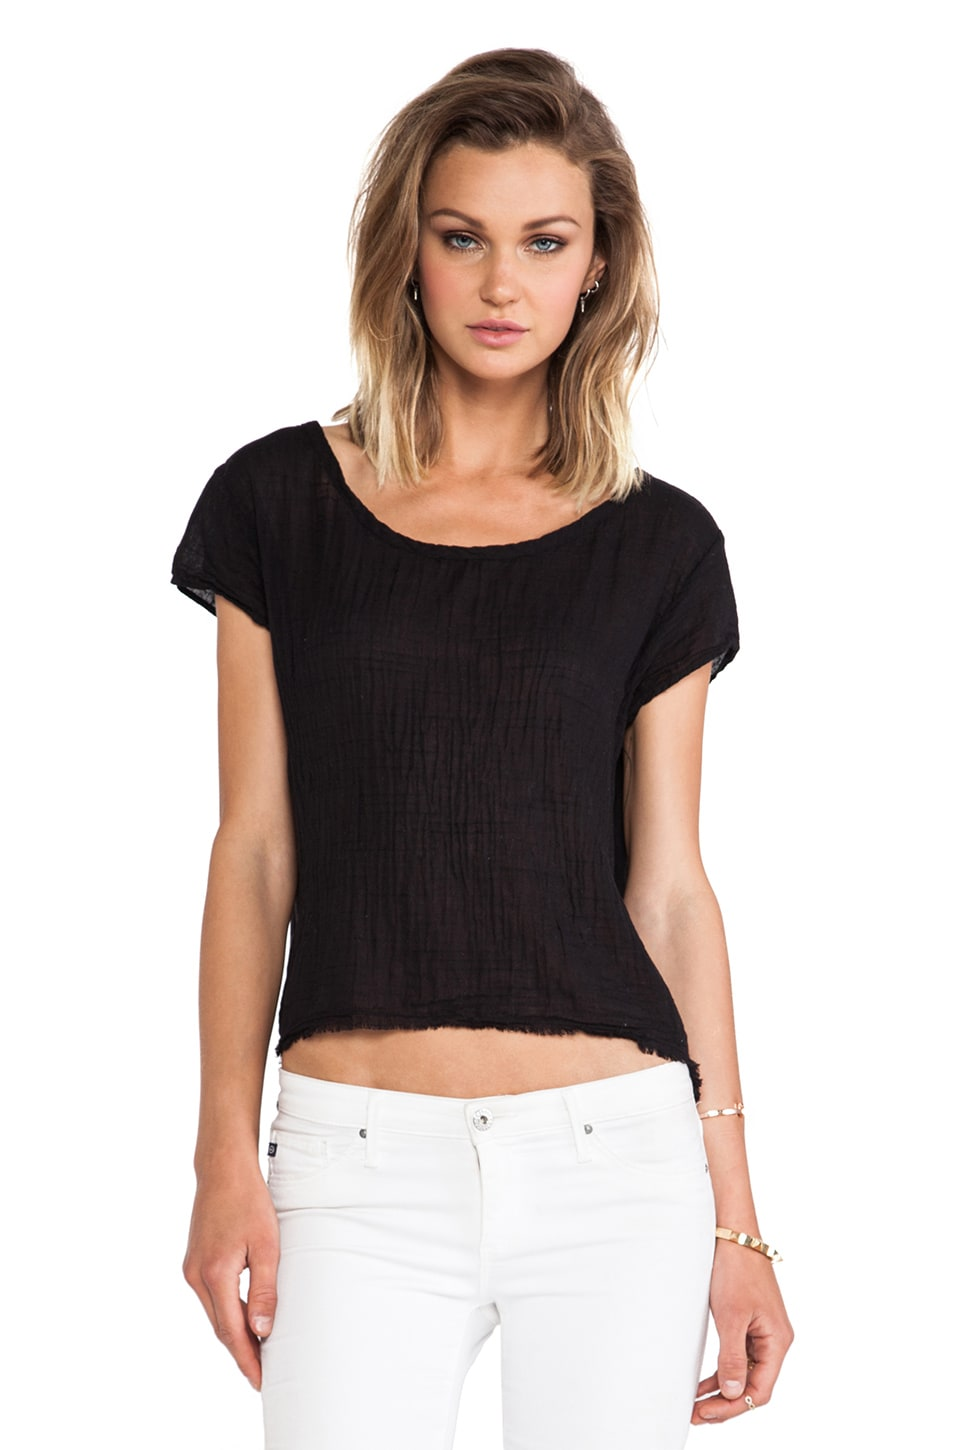 Velvet by Graham & Spencer Deion Sheer Jersey w/ Contrast Tee in Black